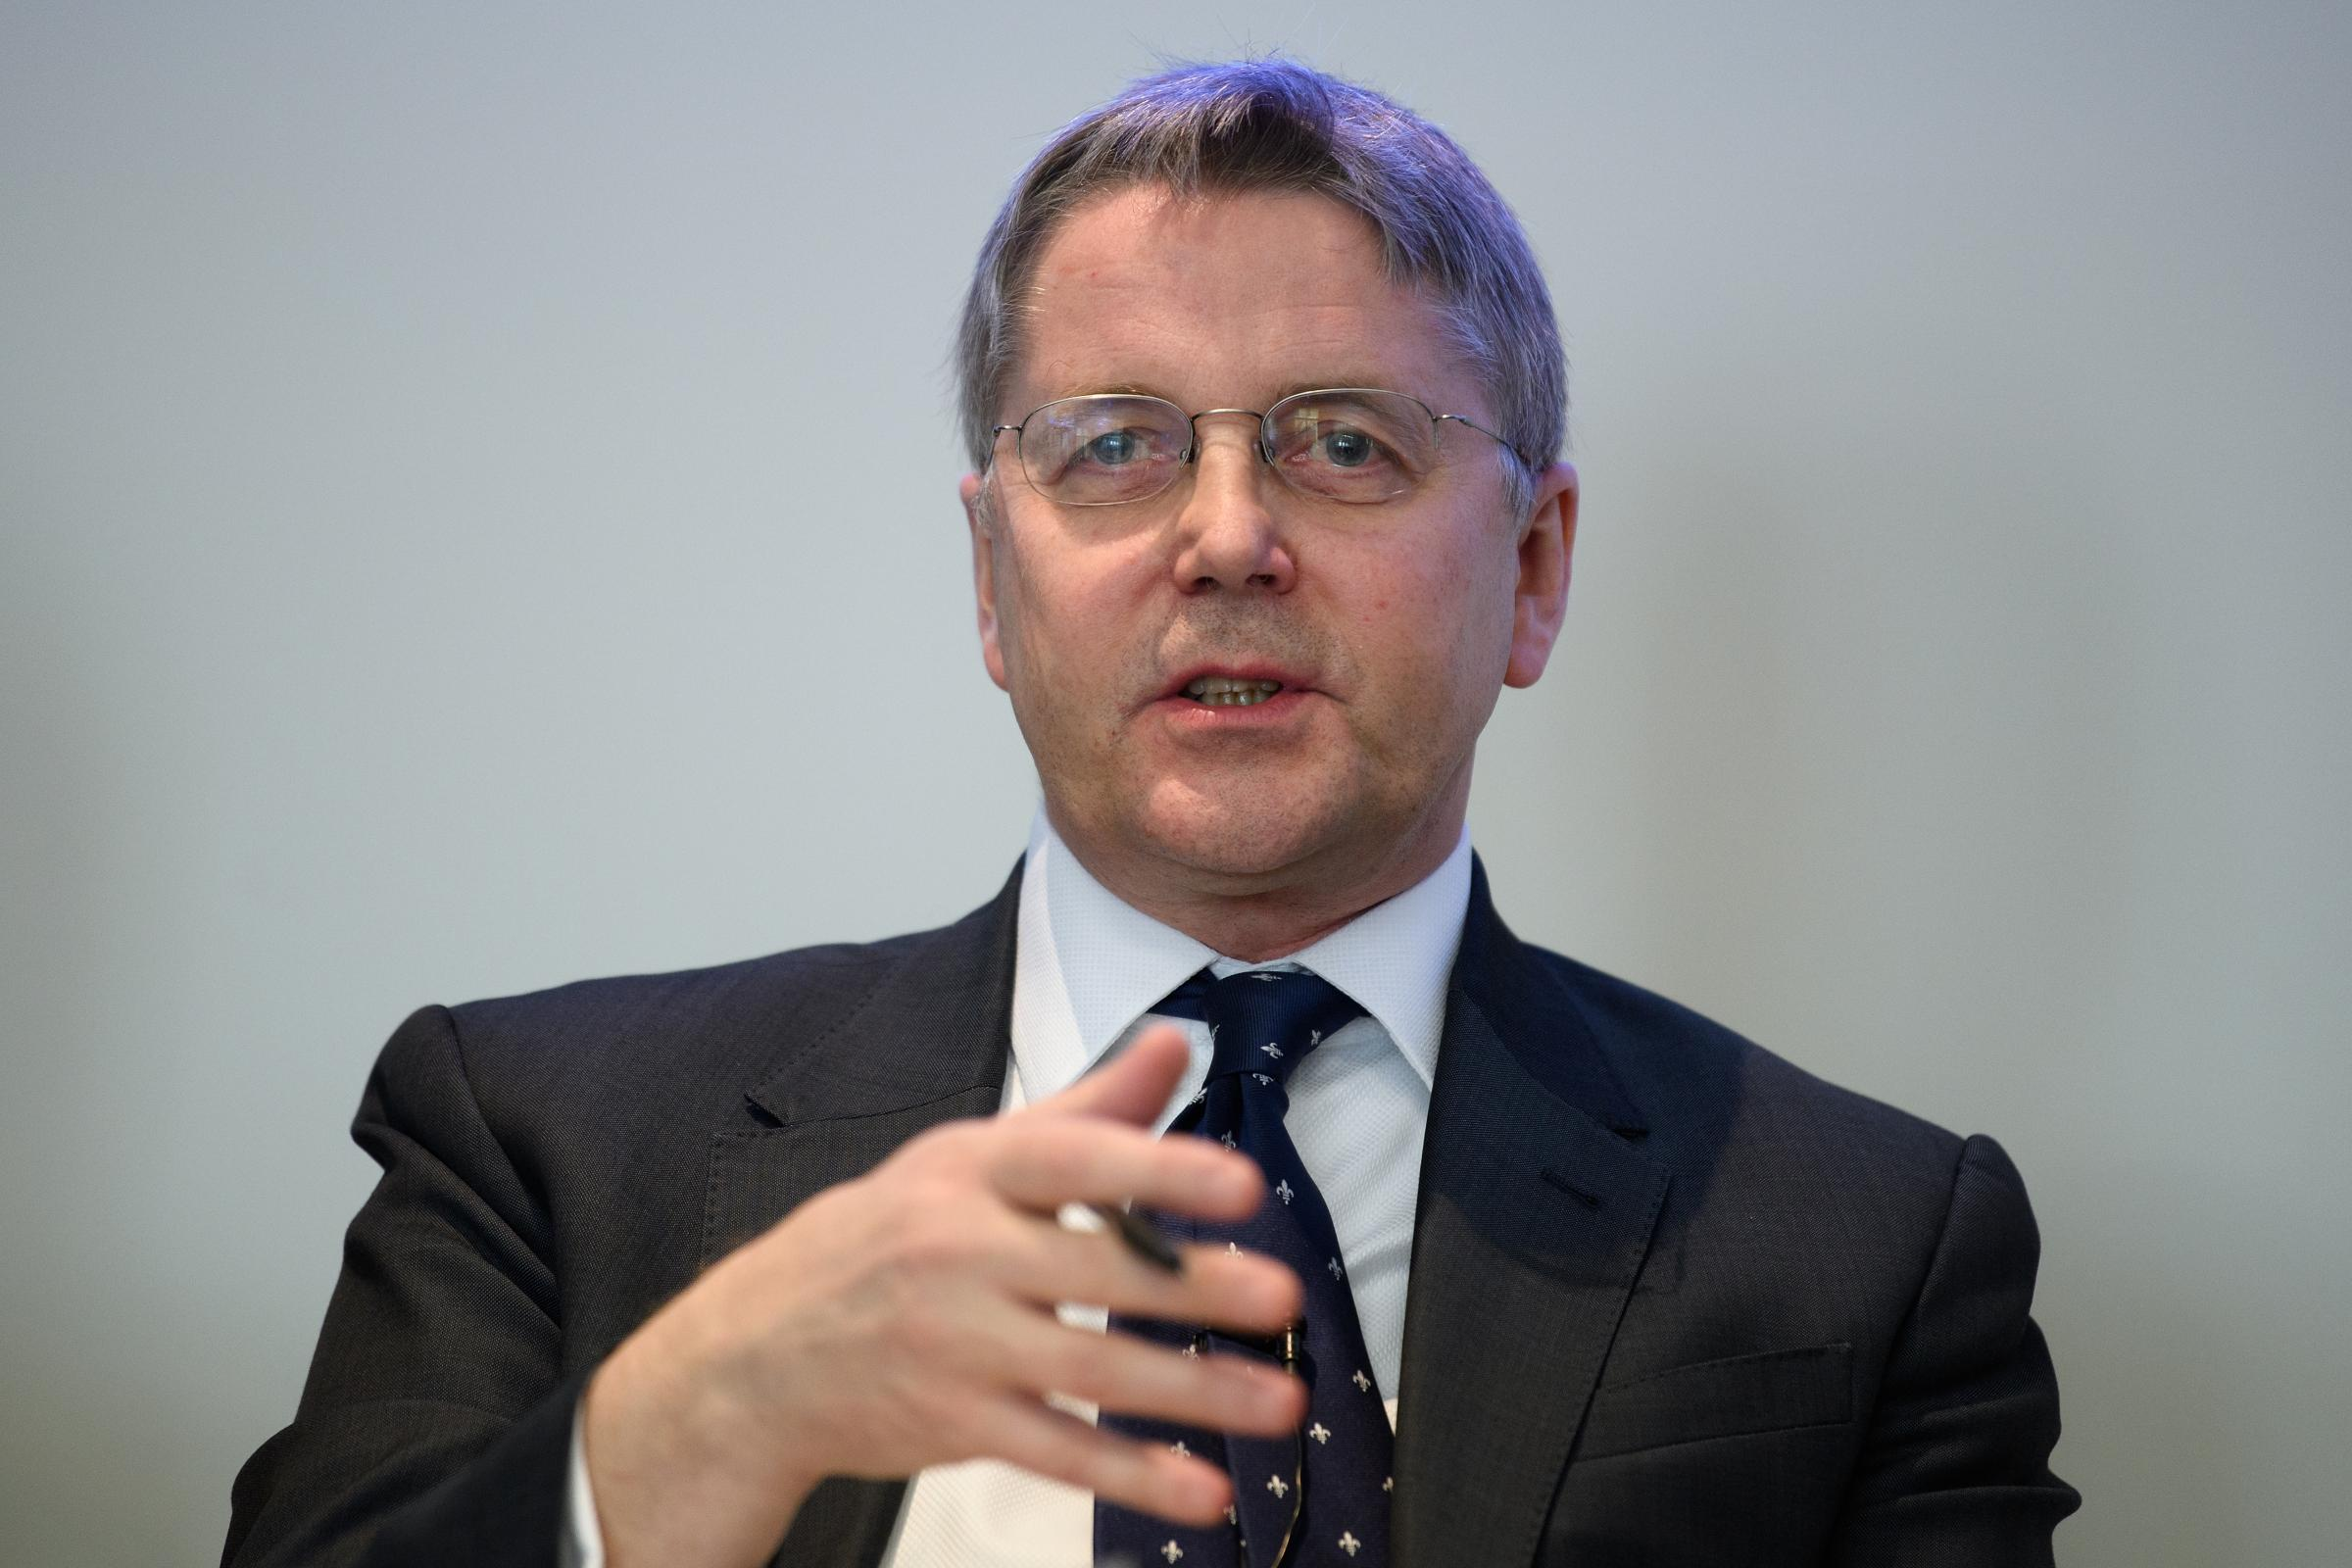 Sir Jeremy Heywood, Former Civil Service Head, Dies Aged 56 - LONDON, ENGLAND - NOVEMBER 30:  Current Cabinet Secretary Jeremy Heywood speaks at an event to commemorate 100 years since the post of Cabinet Secretary was created, on November 30, 2016 in Lon